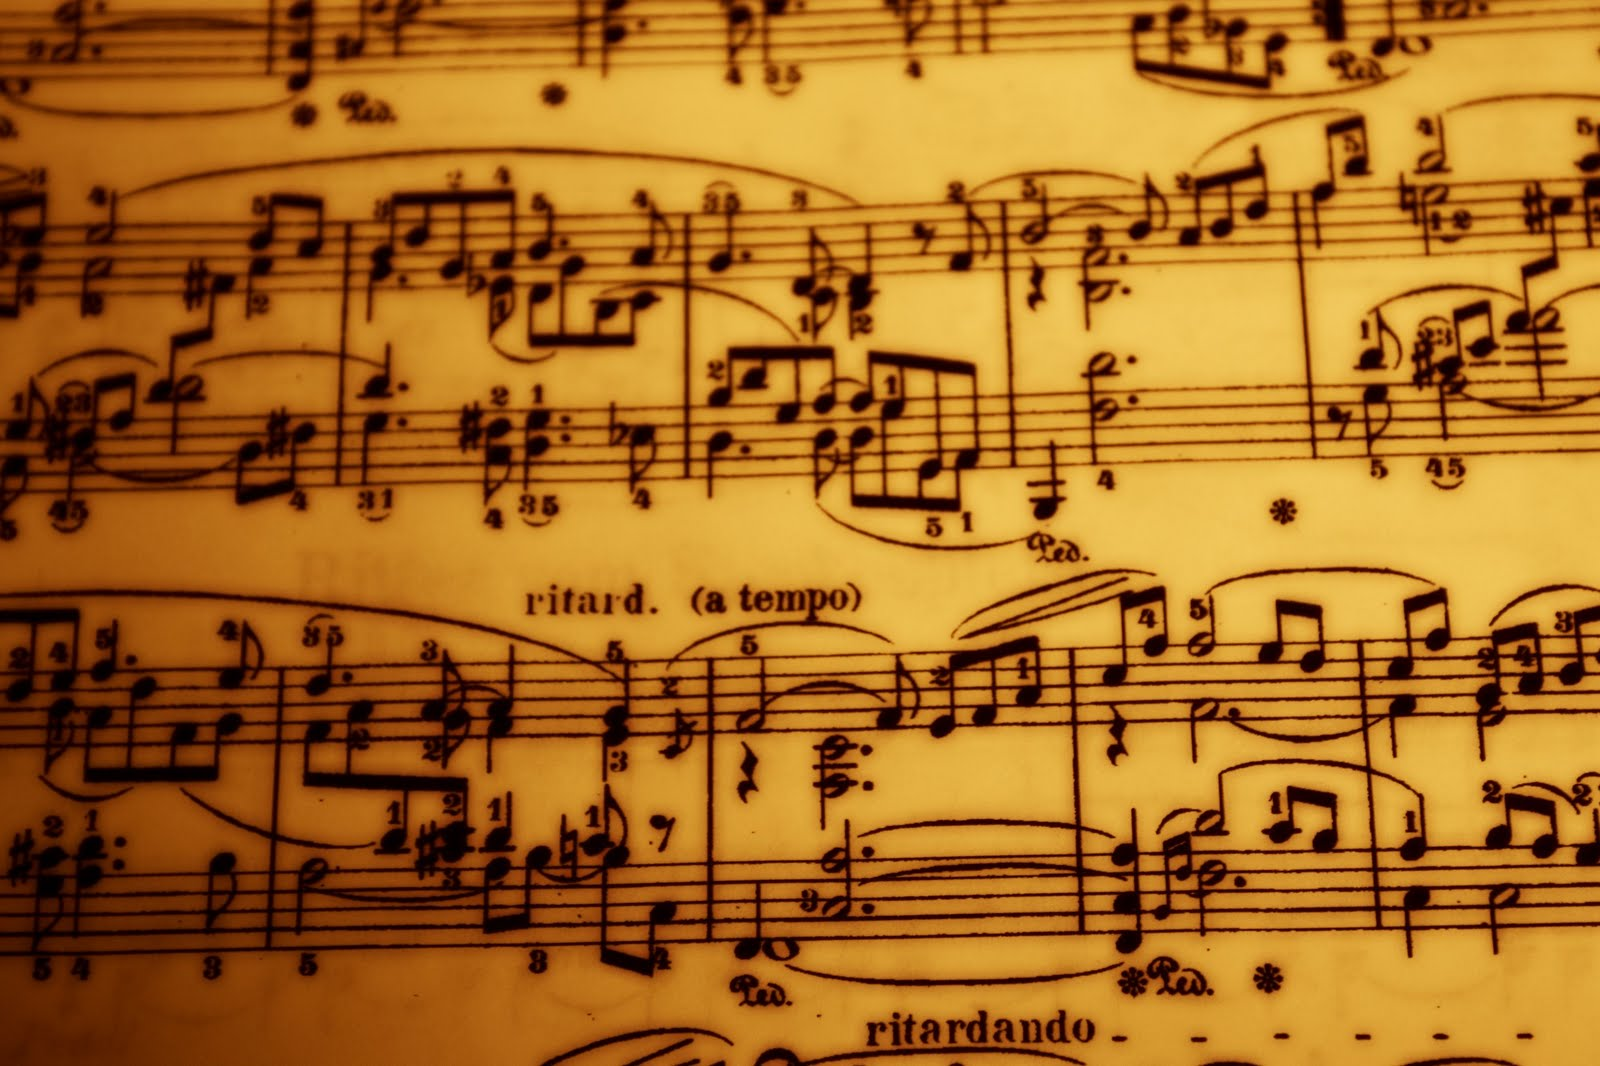 Vintage Music Note Wallpapers For Android Harmony: Download Vintage Sheet Music Wallpaper Gallery